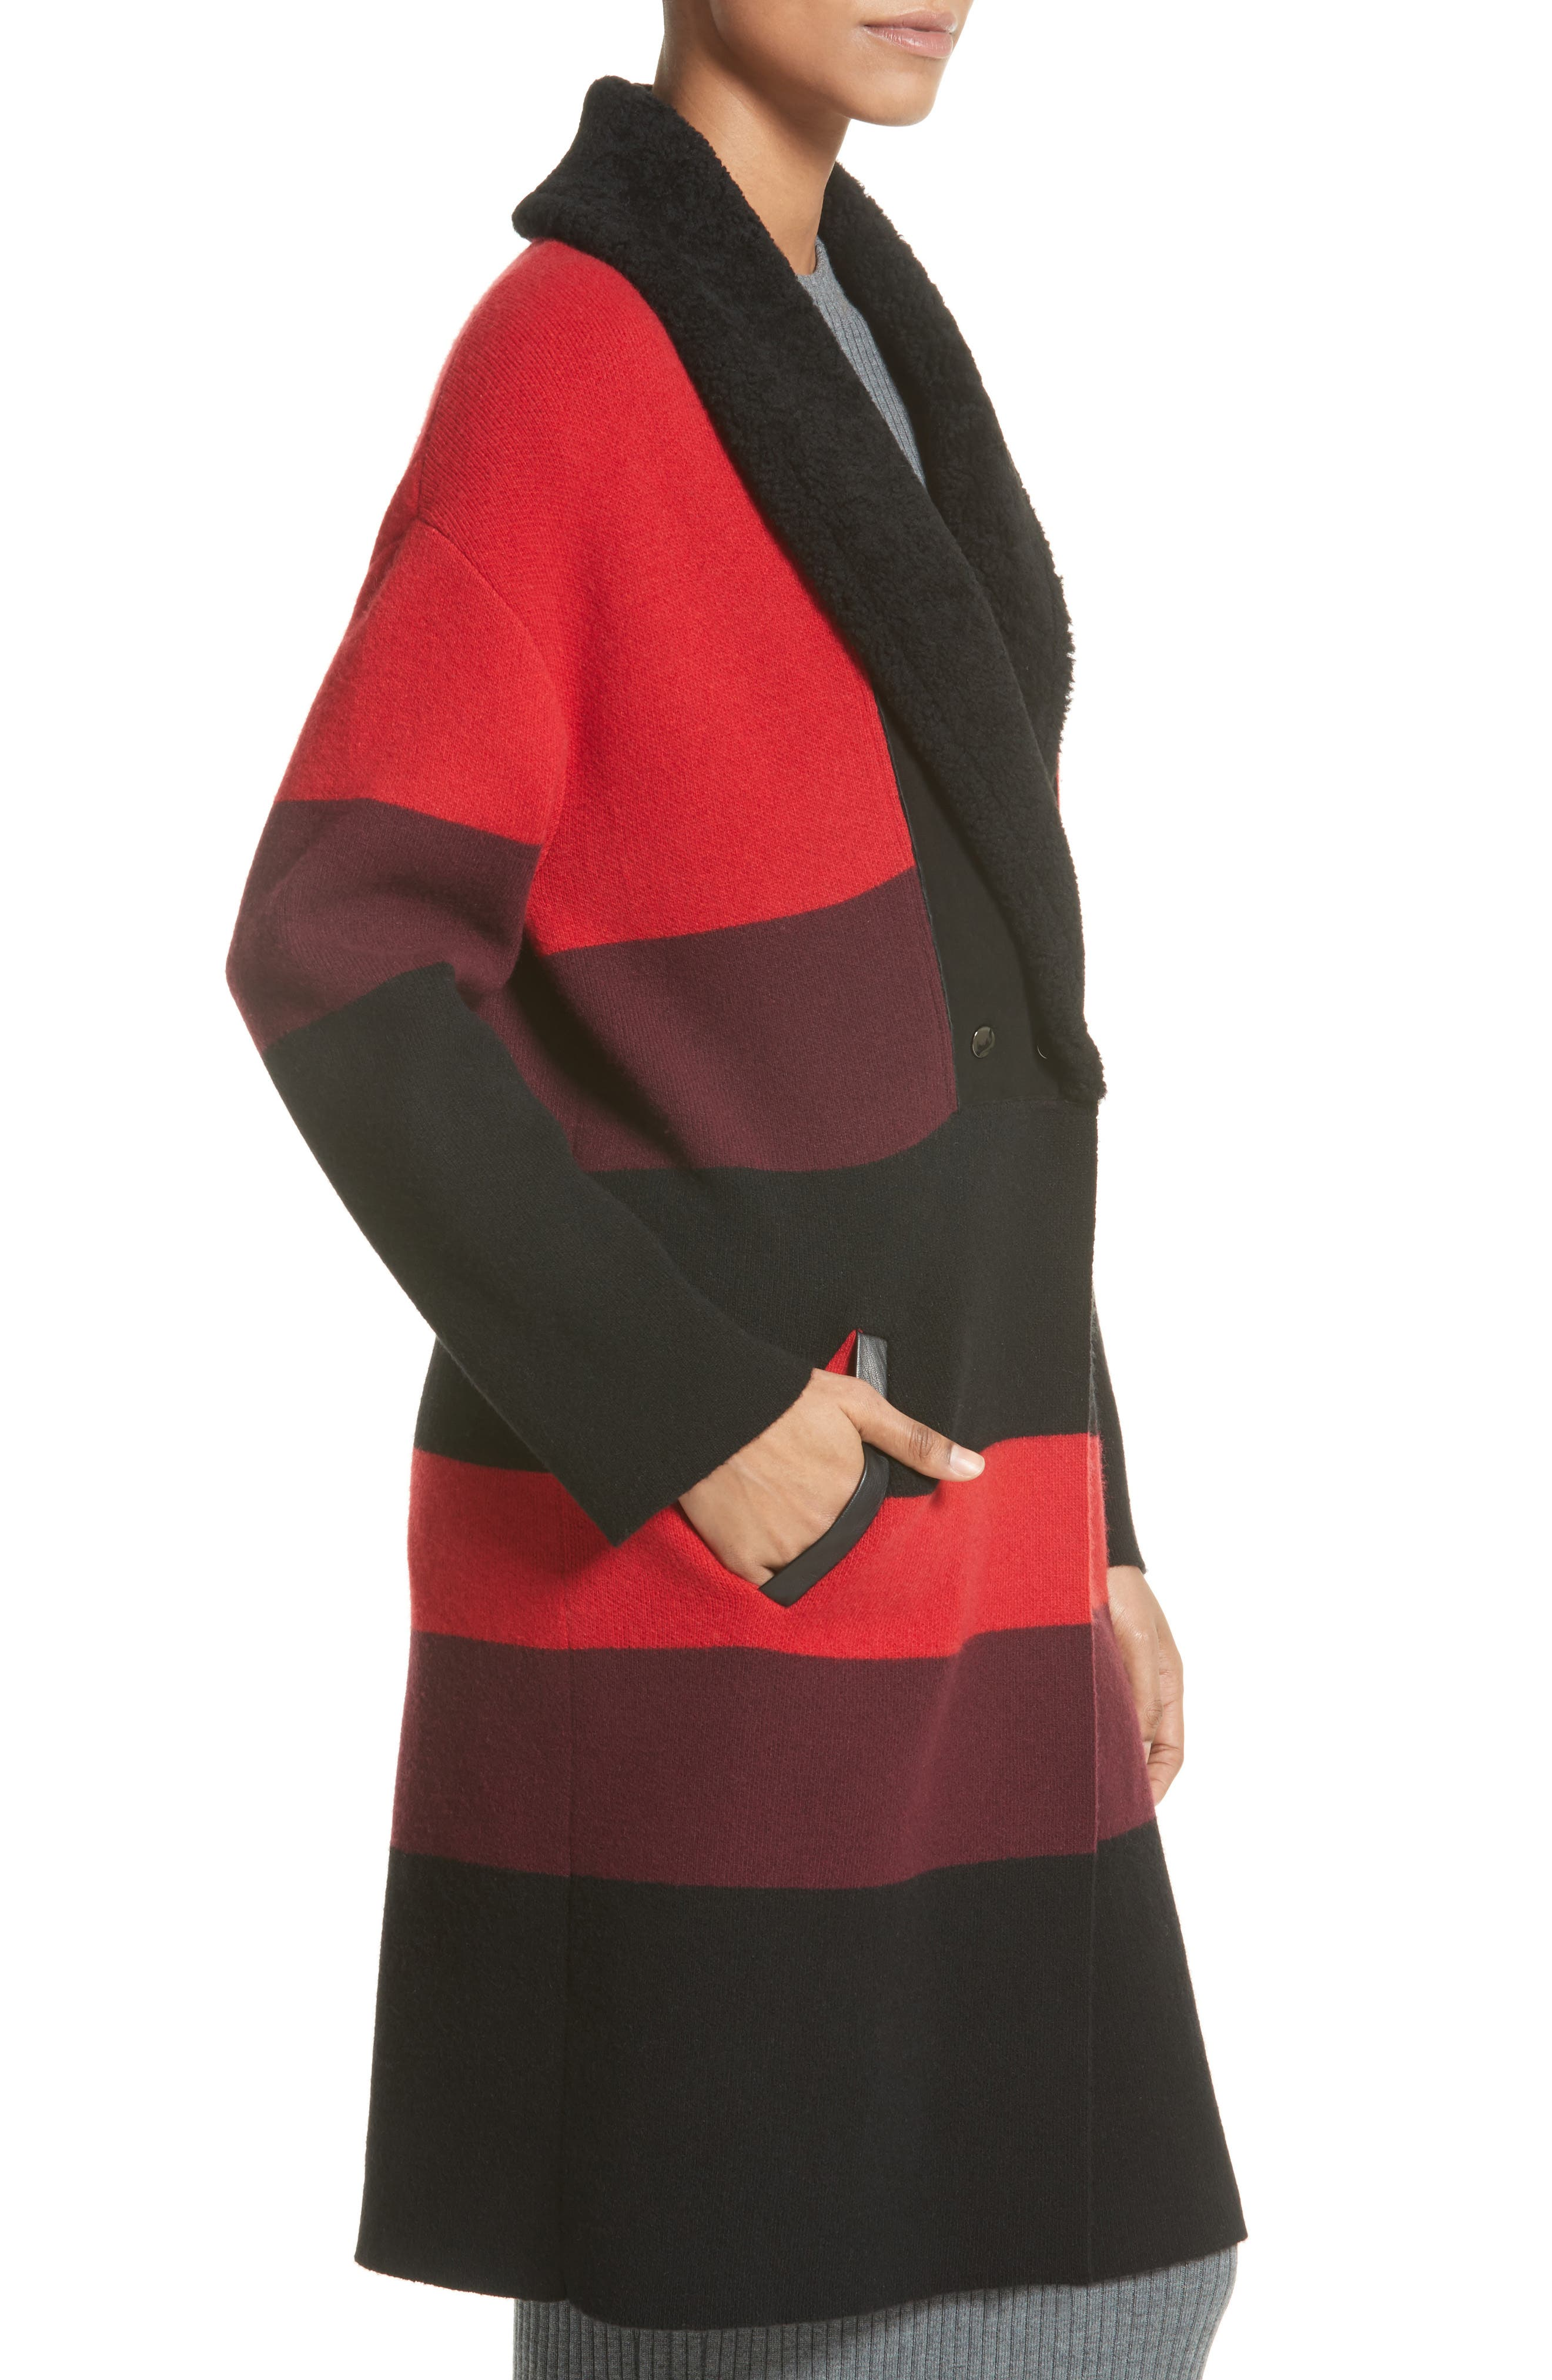 Double Knit Felted Wool Blend Coat with Genuine Shearling Collar,                             Alternate thumbnail 4, color,                             600